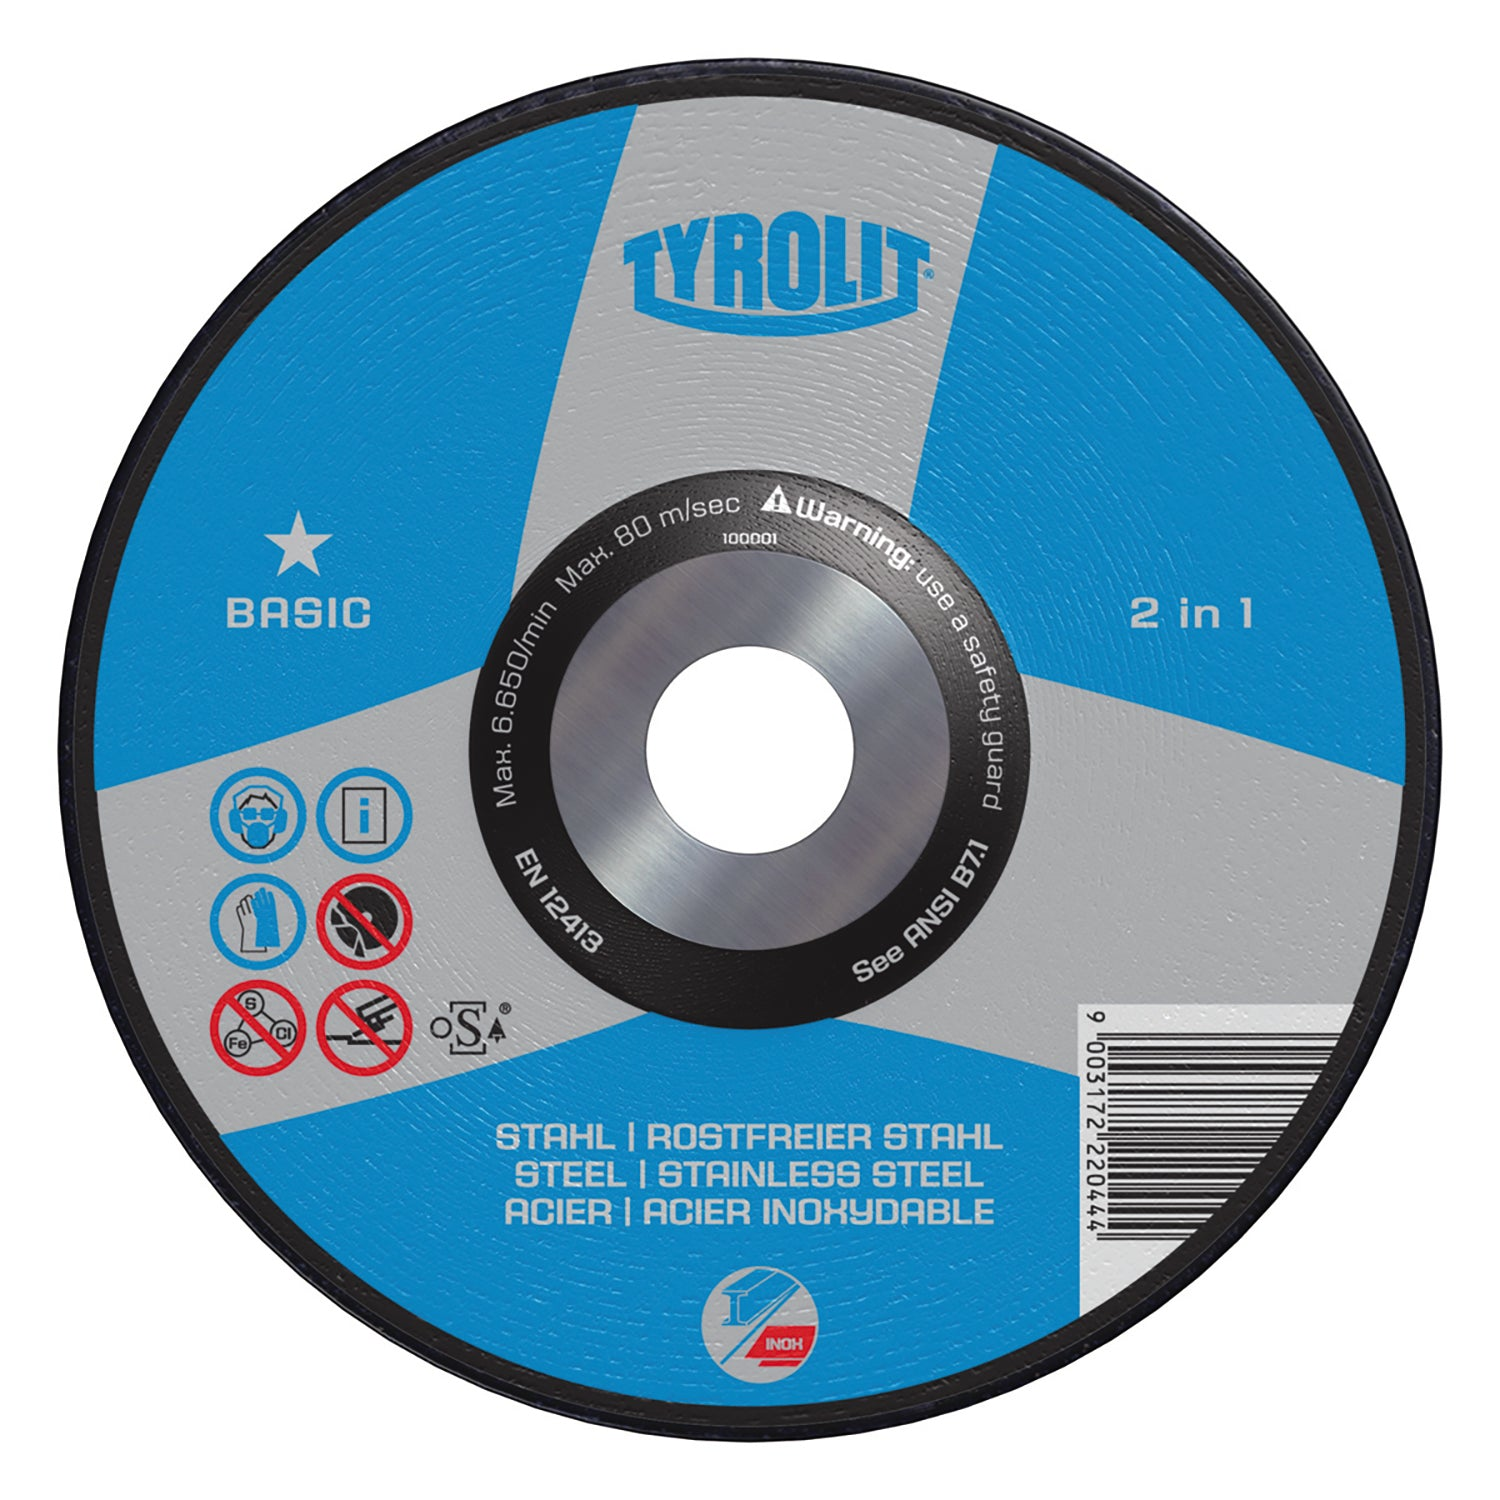 "25PC 4-1/2"" x .060 x 7/8"" Tyrolit Abrasives BASIC Super-Thin Cut-Off Wheel"